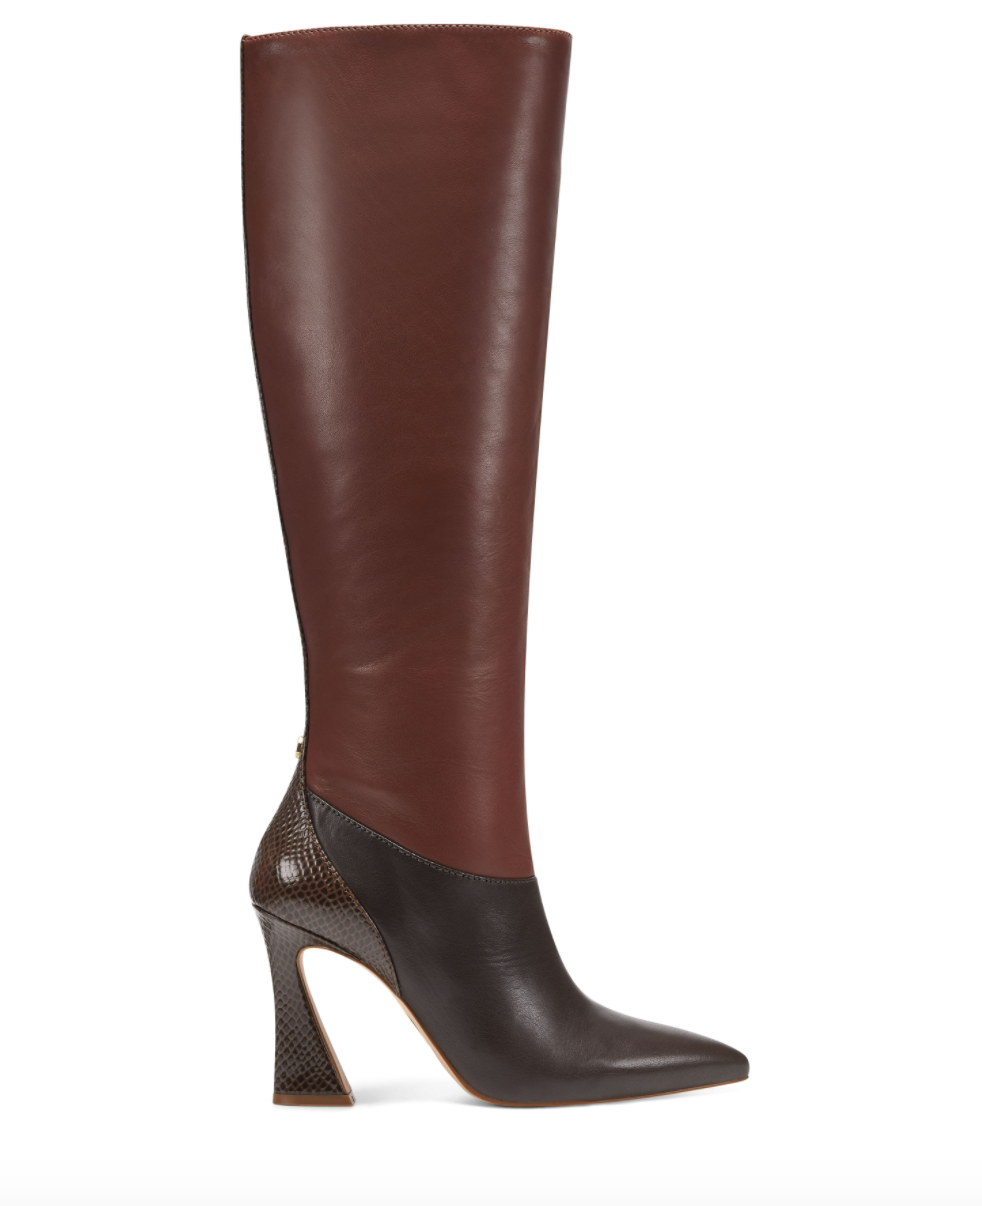 Louise et Cie Mixed-Material Boots